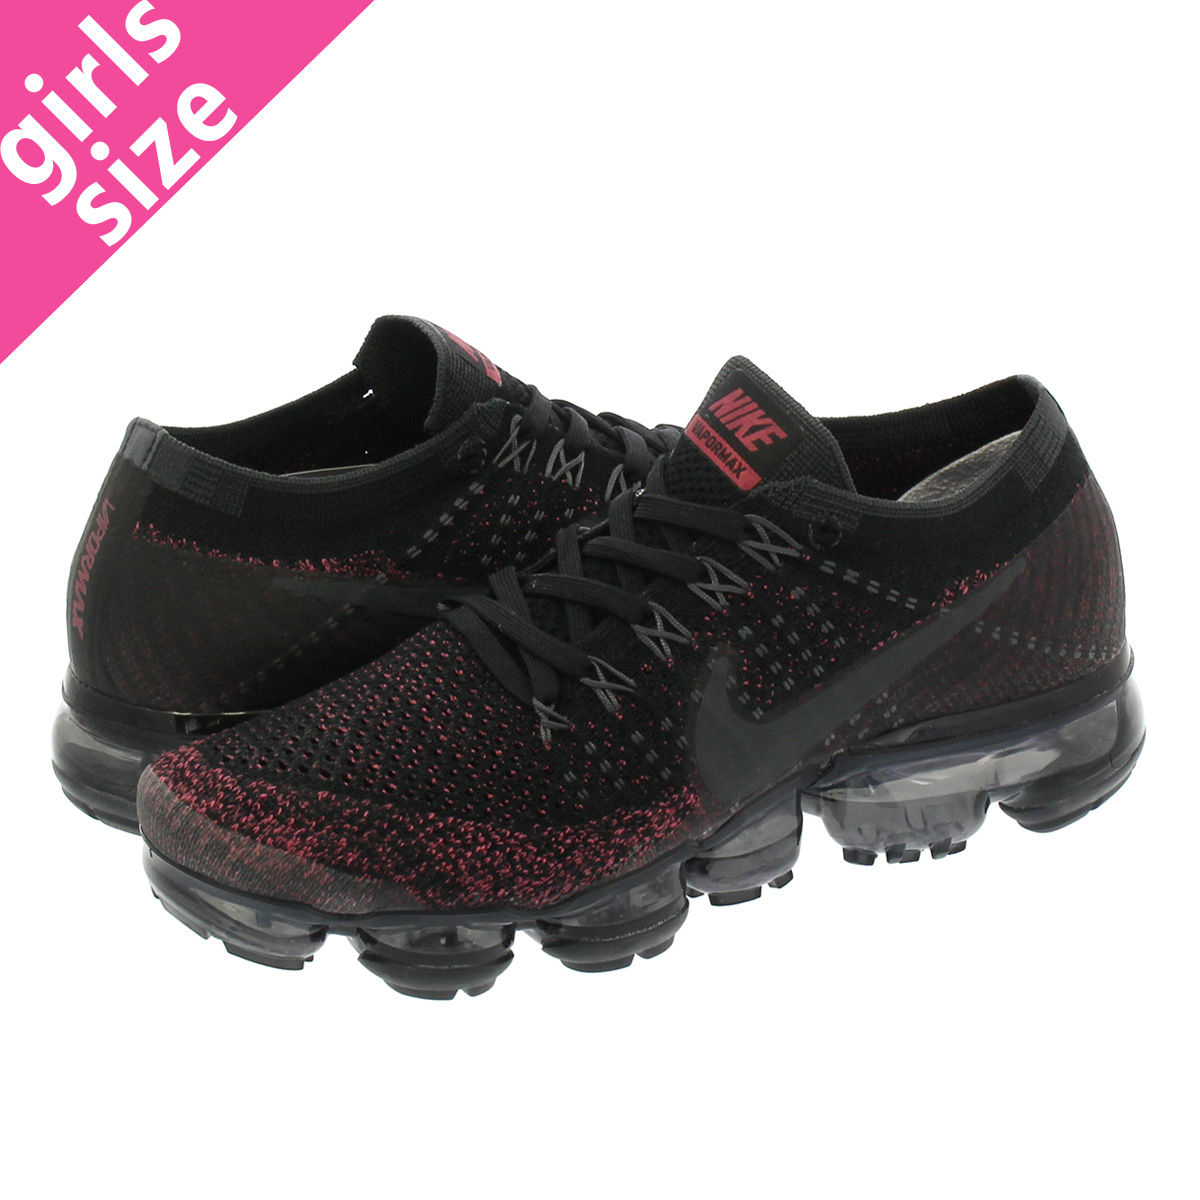 3222ecd420 NIKE WMNS AIR VAPORMAX FLYKNIT Nike women vapor max fried food knit  BLACK/ANTHRACITE/ ...